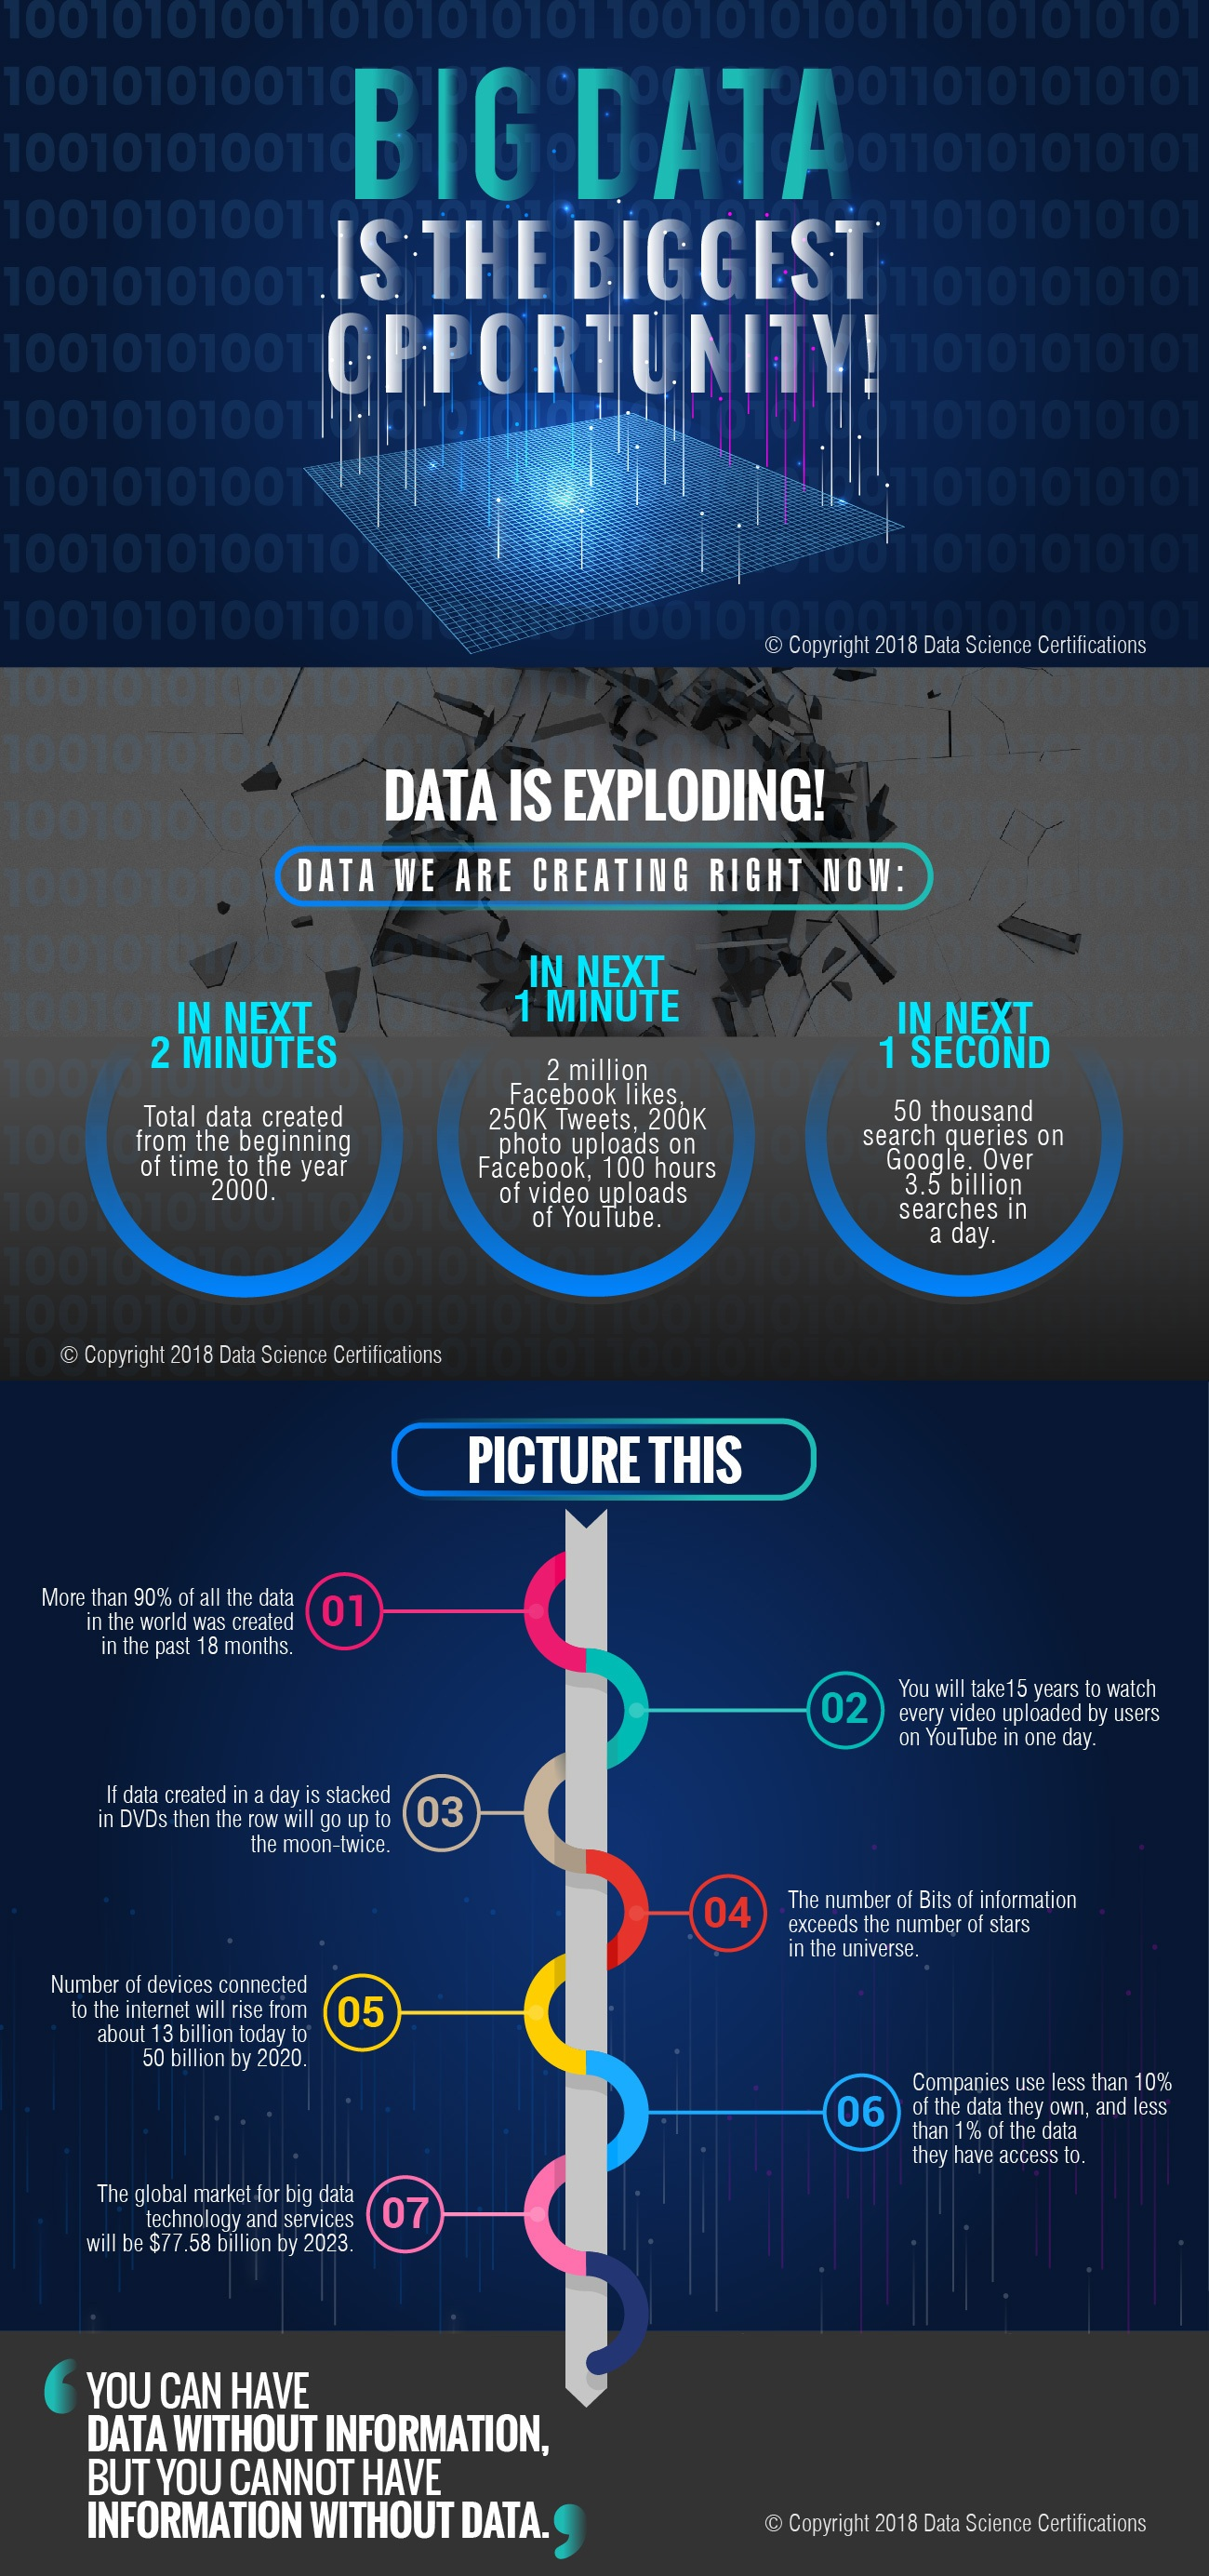 Big Data Is The Biggest Opportunity